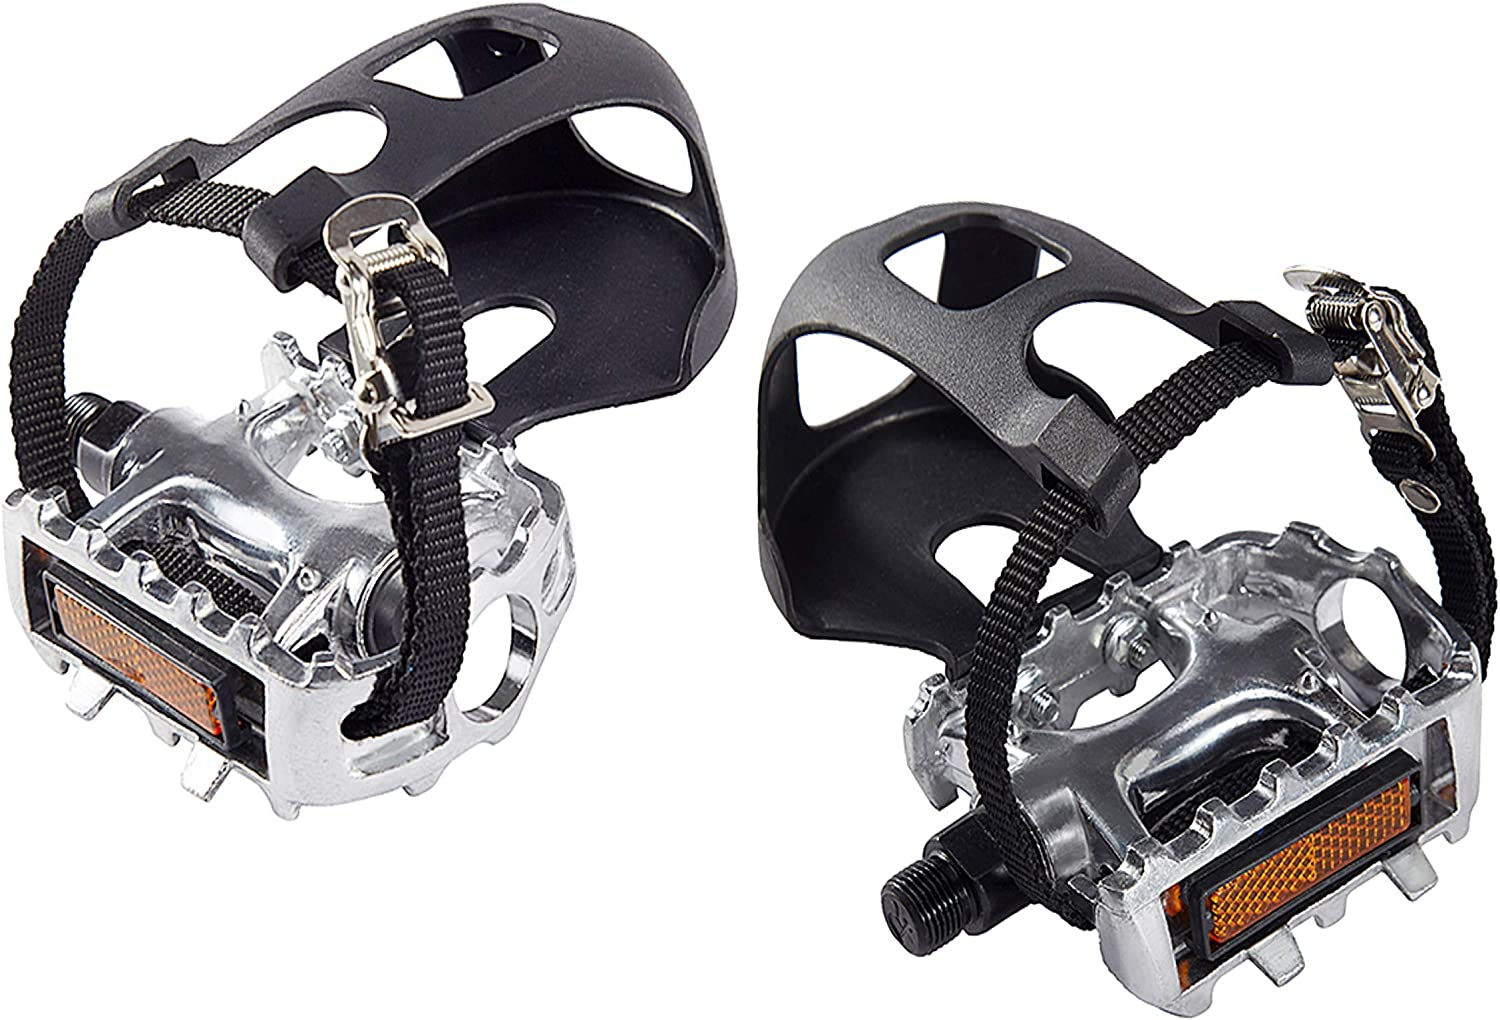 AbraFit 9/16-Inch Premium Quality Bicycle Pedals with Toe Clips and Straps, Easy to Install, Nice Toe-Room Area